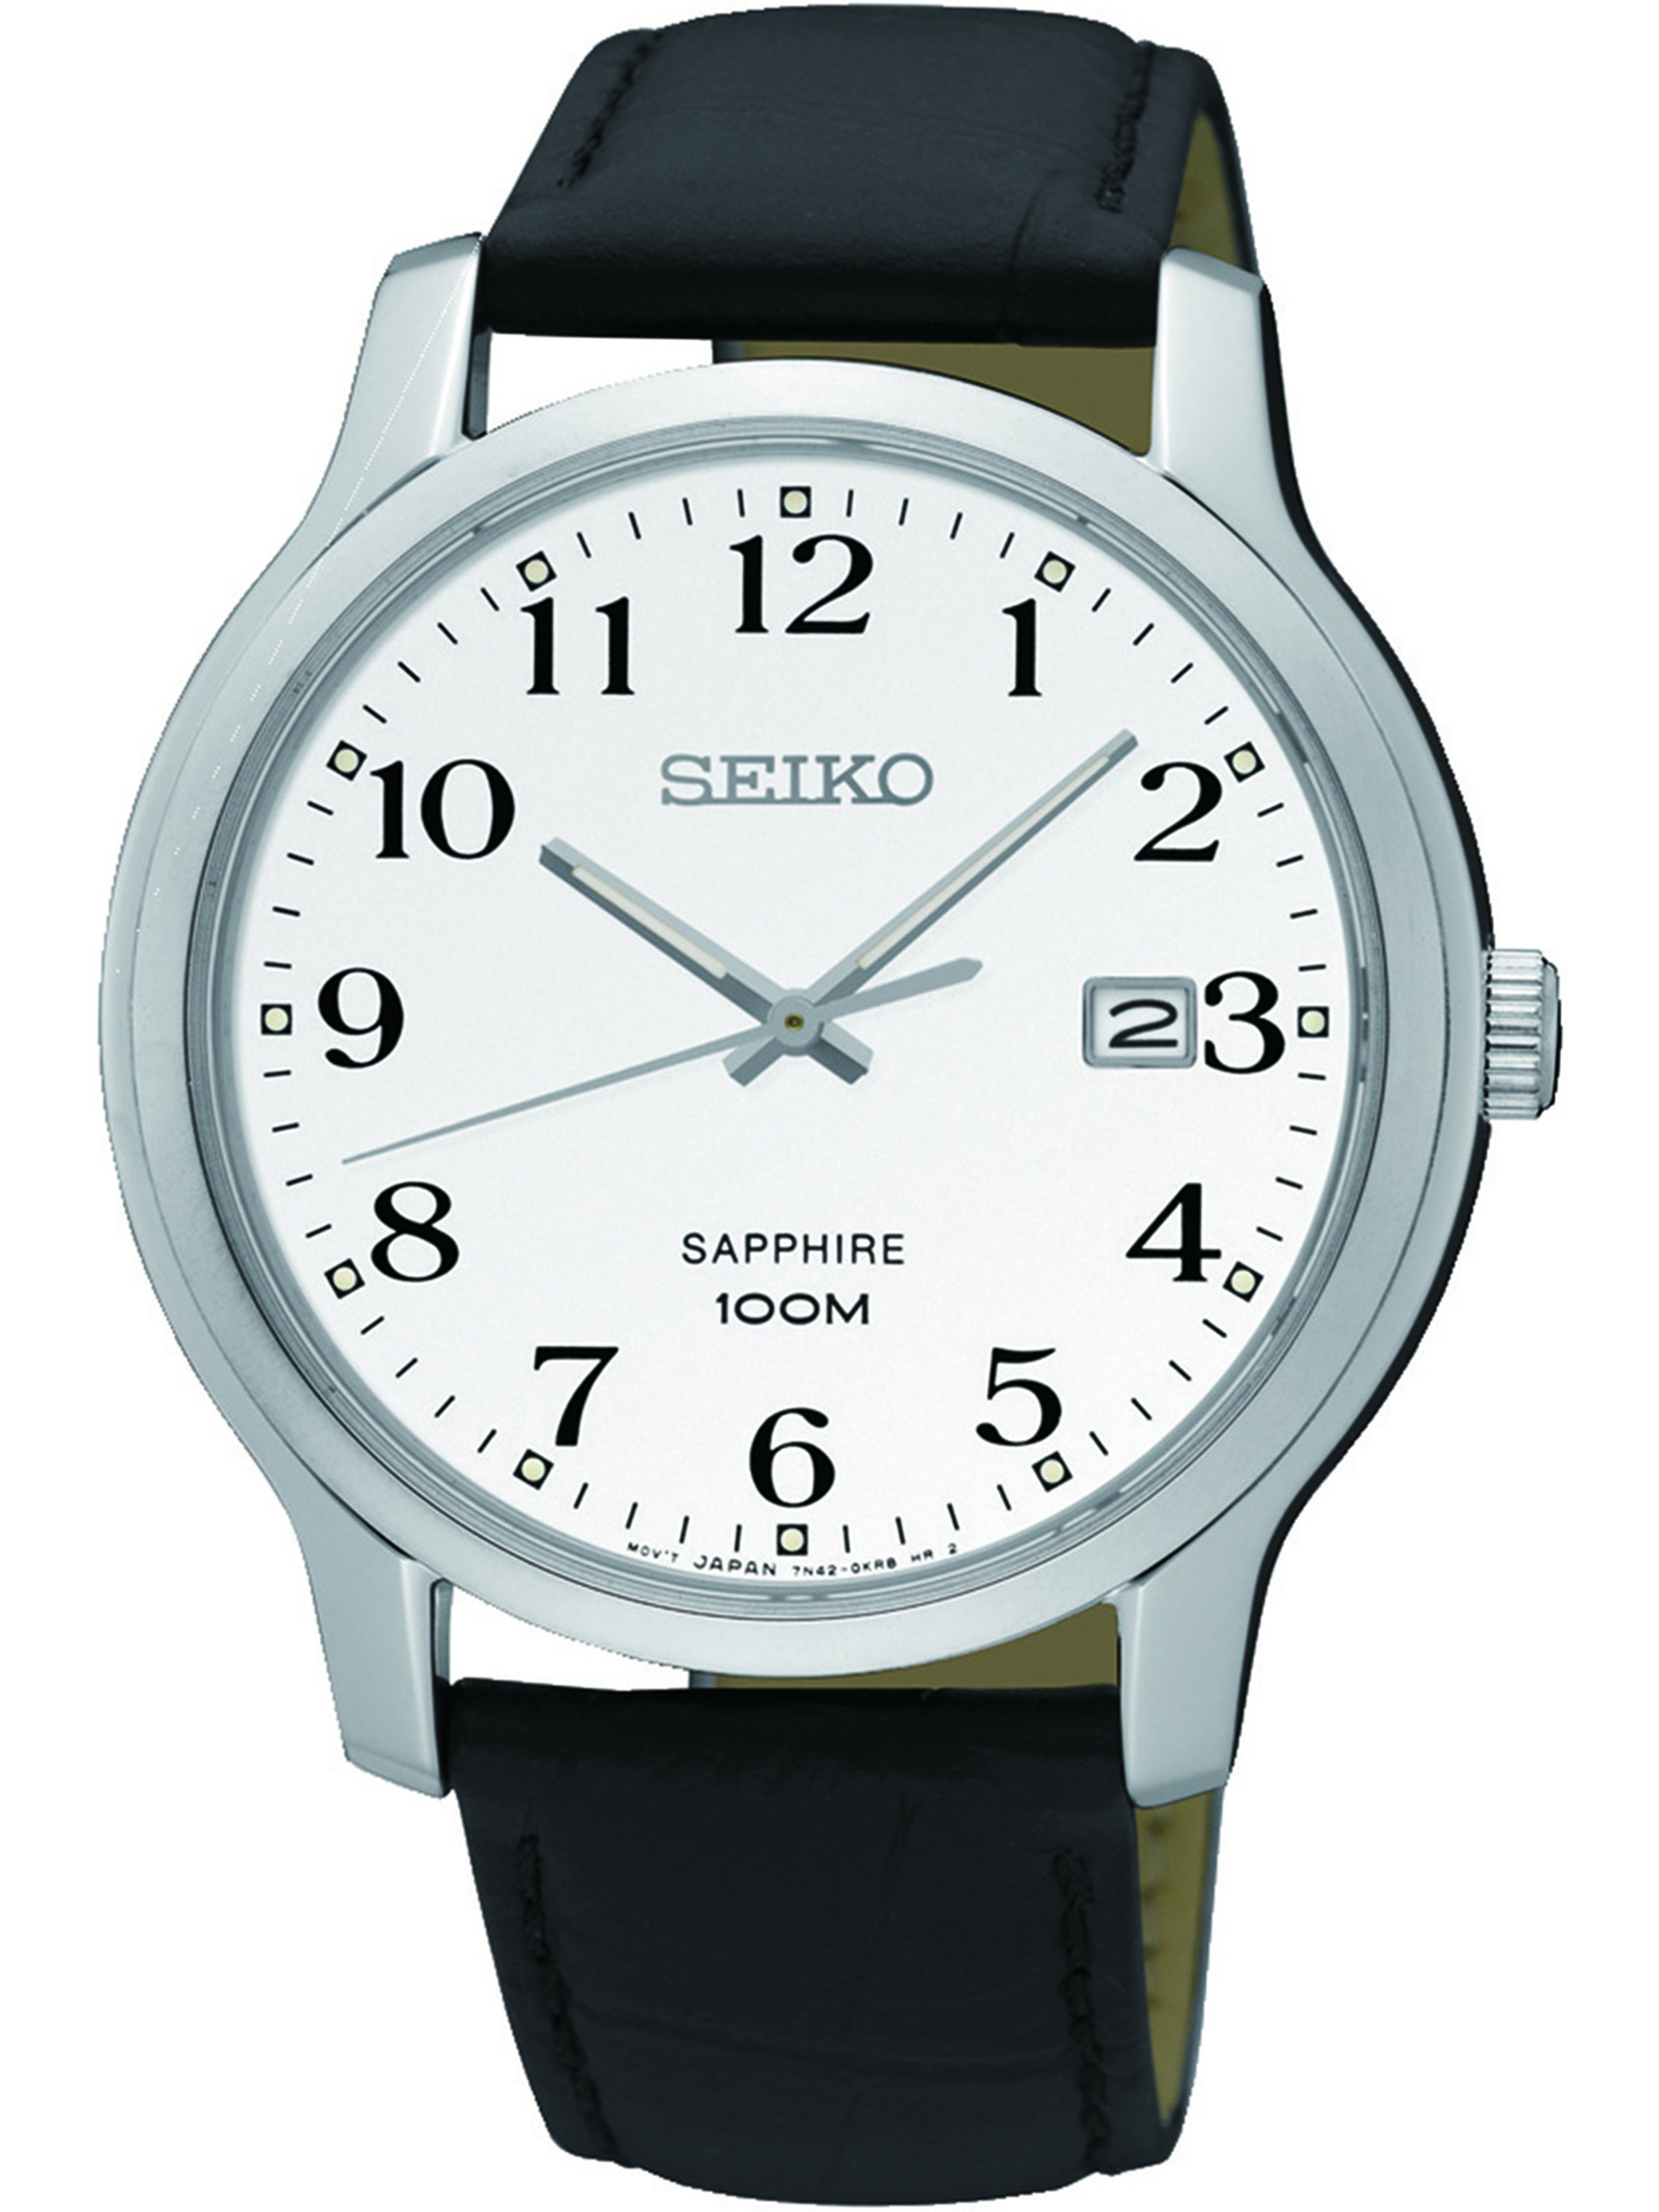 SEIKO SGEH69P1,Men's dress,Stainless Steel Case,leather strap,Sapphire Crystal,Date,100m WR,SGEH69